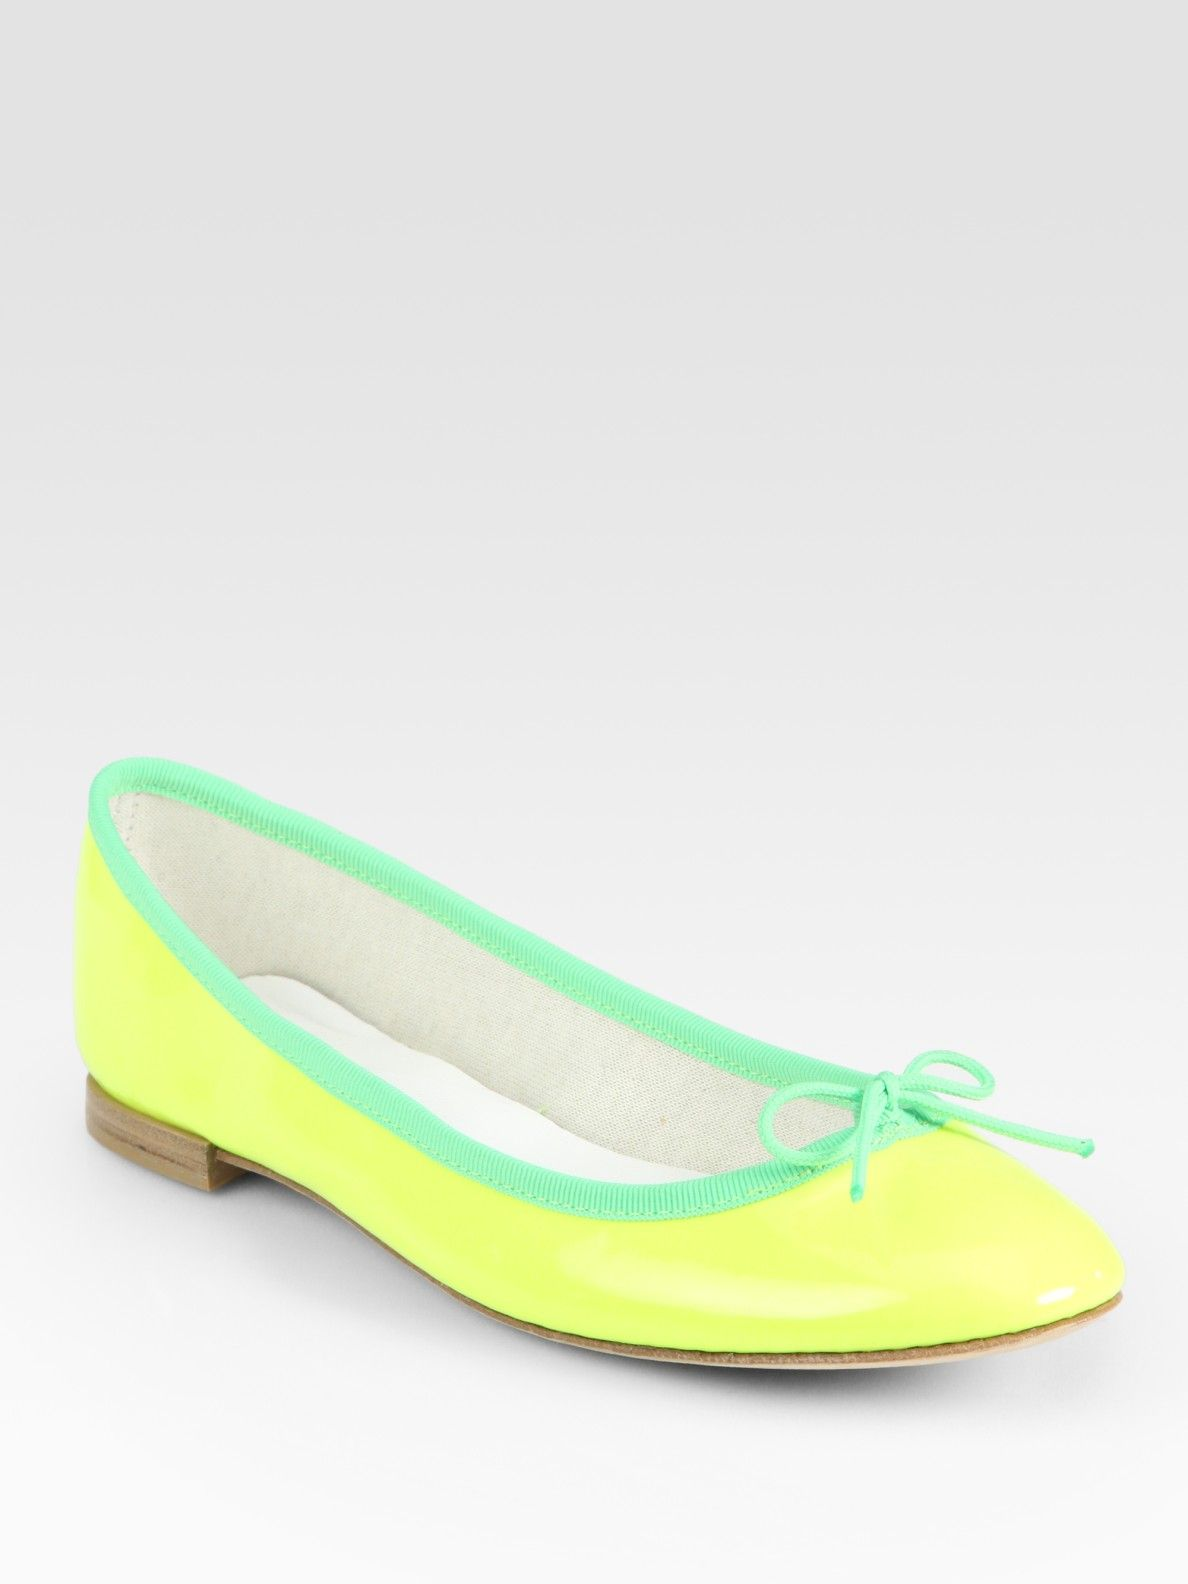 cd68fb420c03 Repetto Neon Patent Leather Ballet Flats in Yellow (neonyellow)